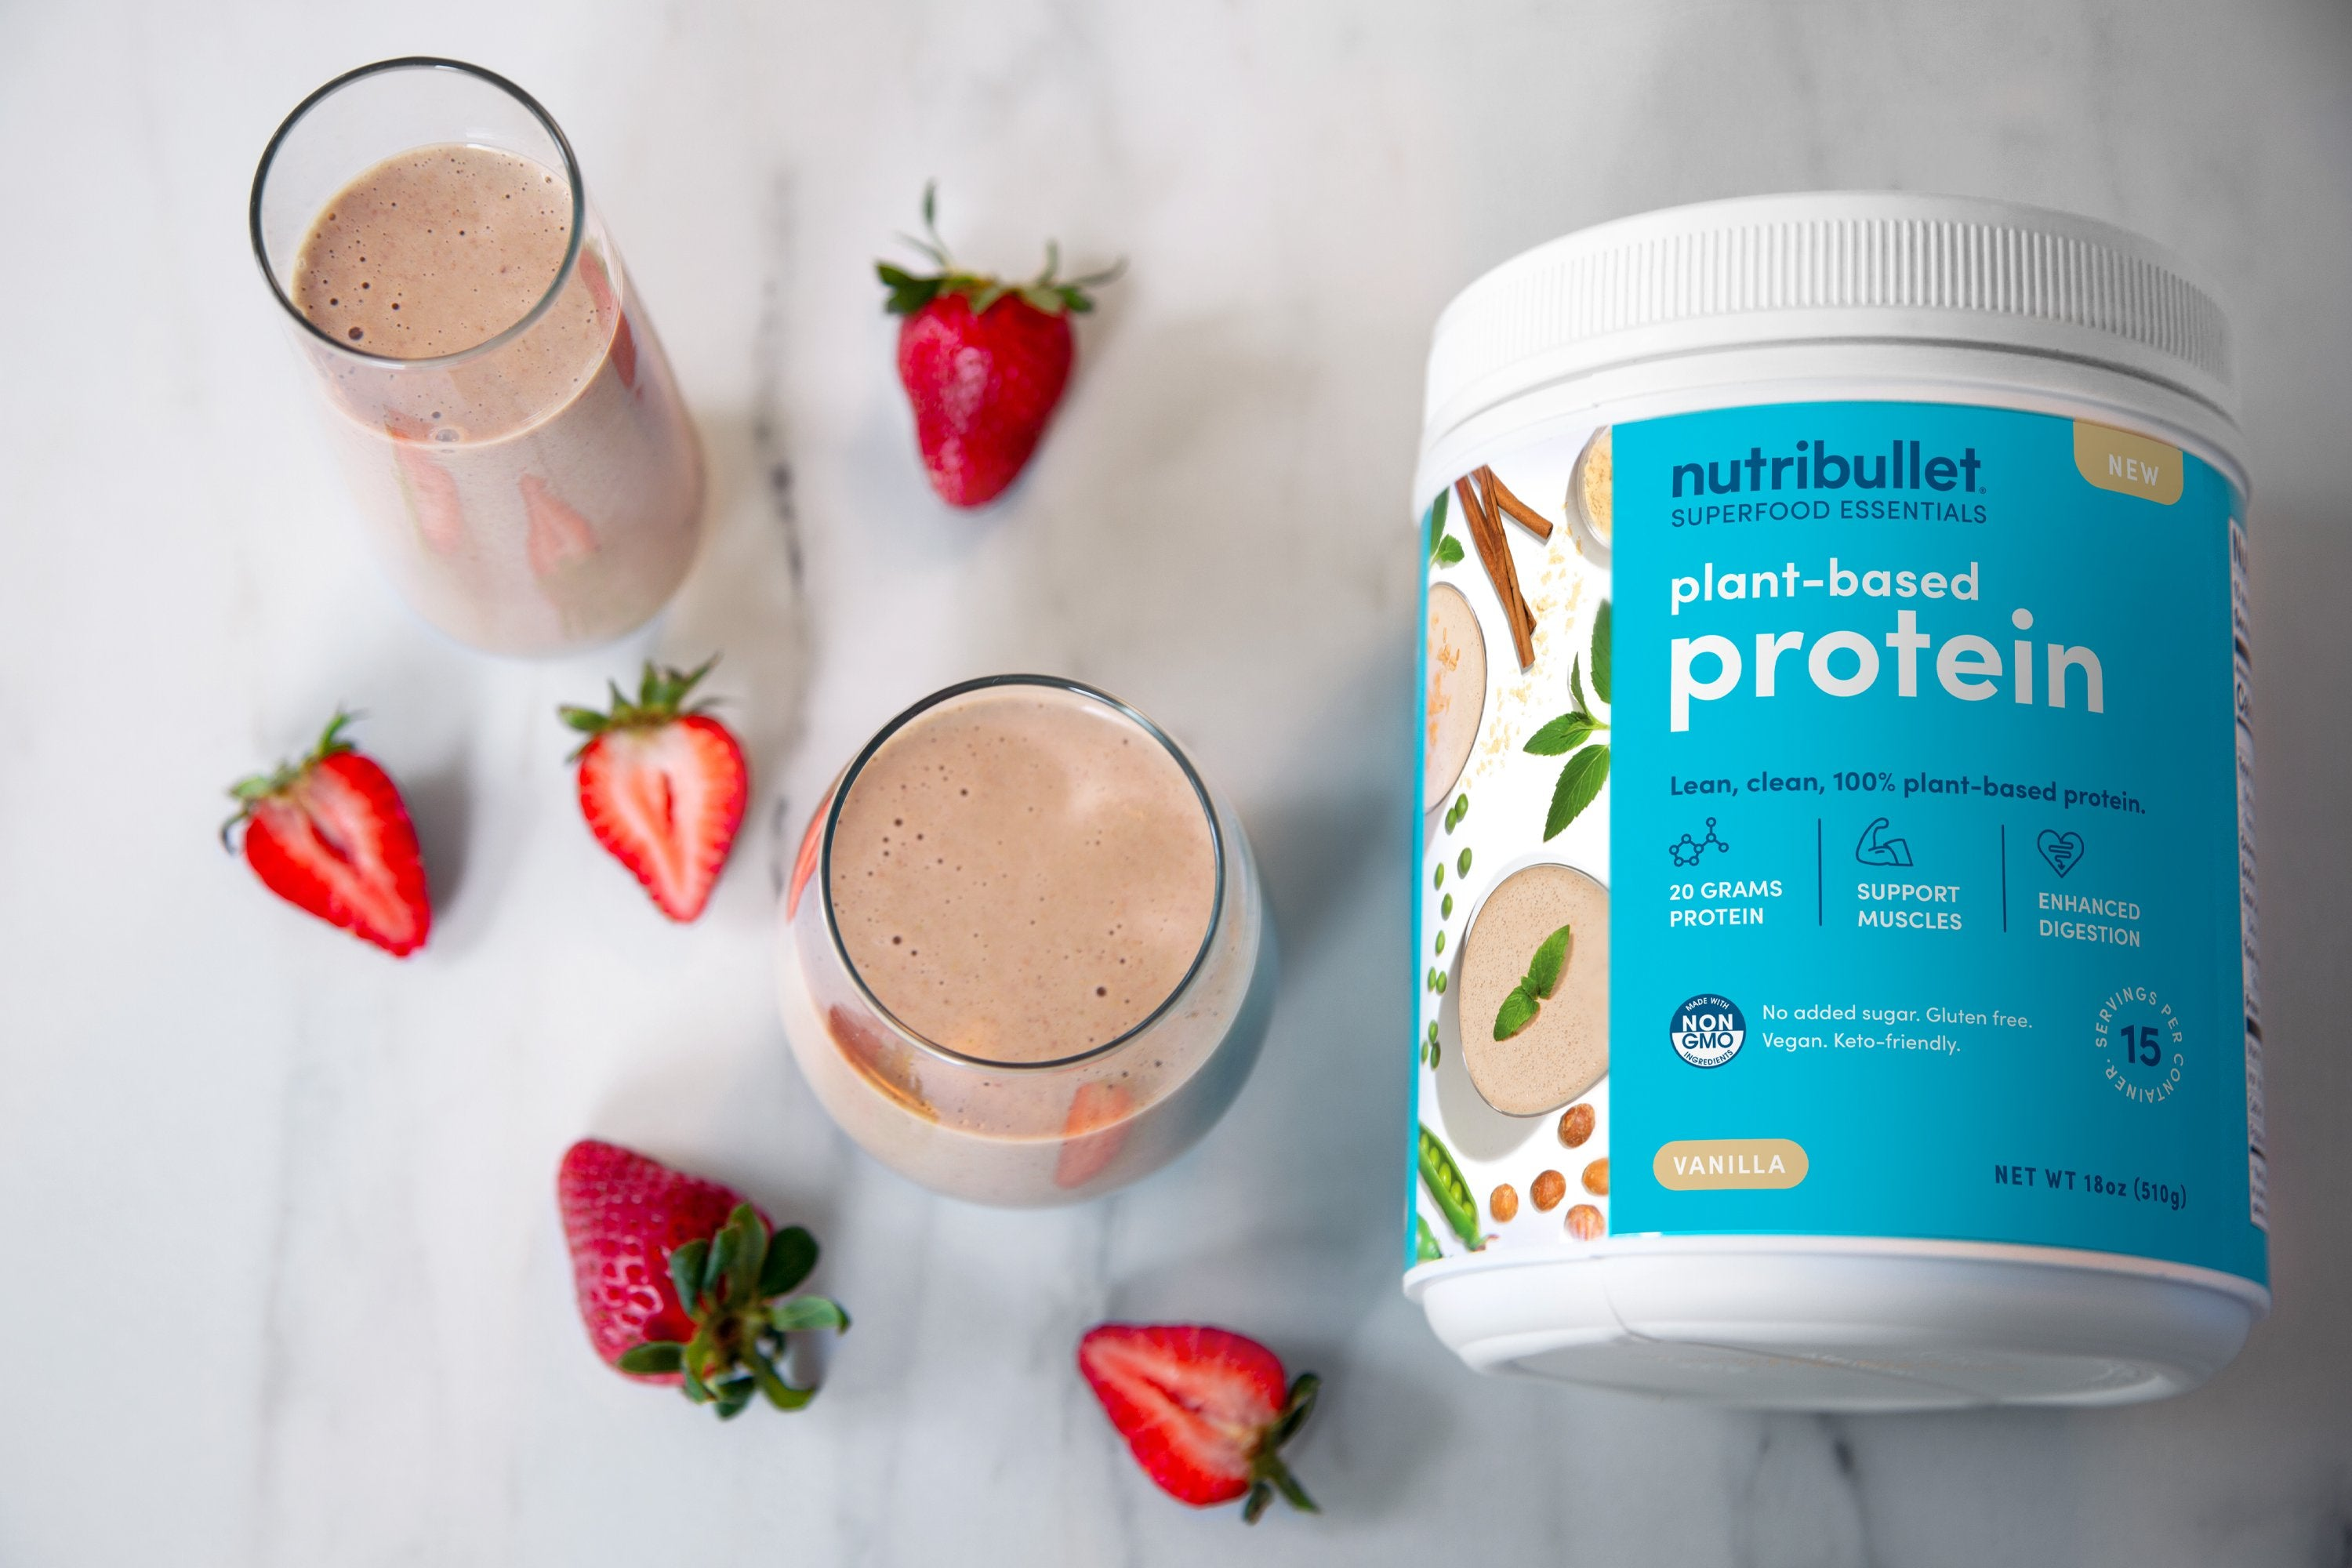 Strawberry-Banana Protein